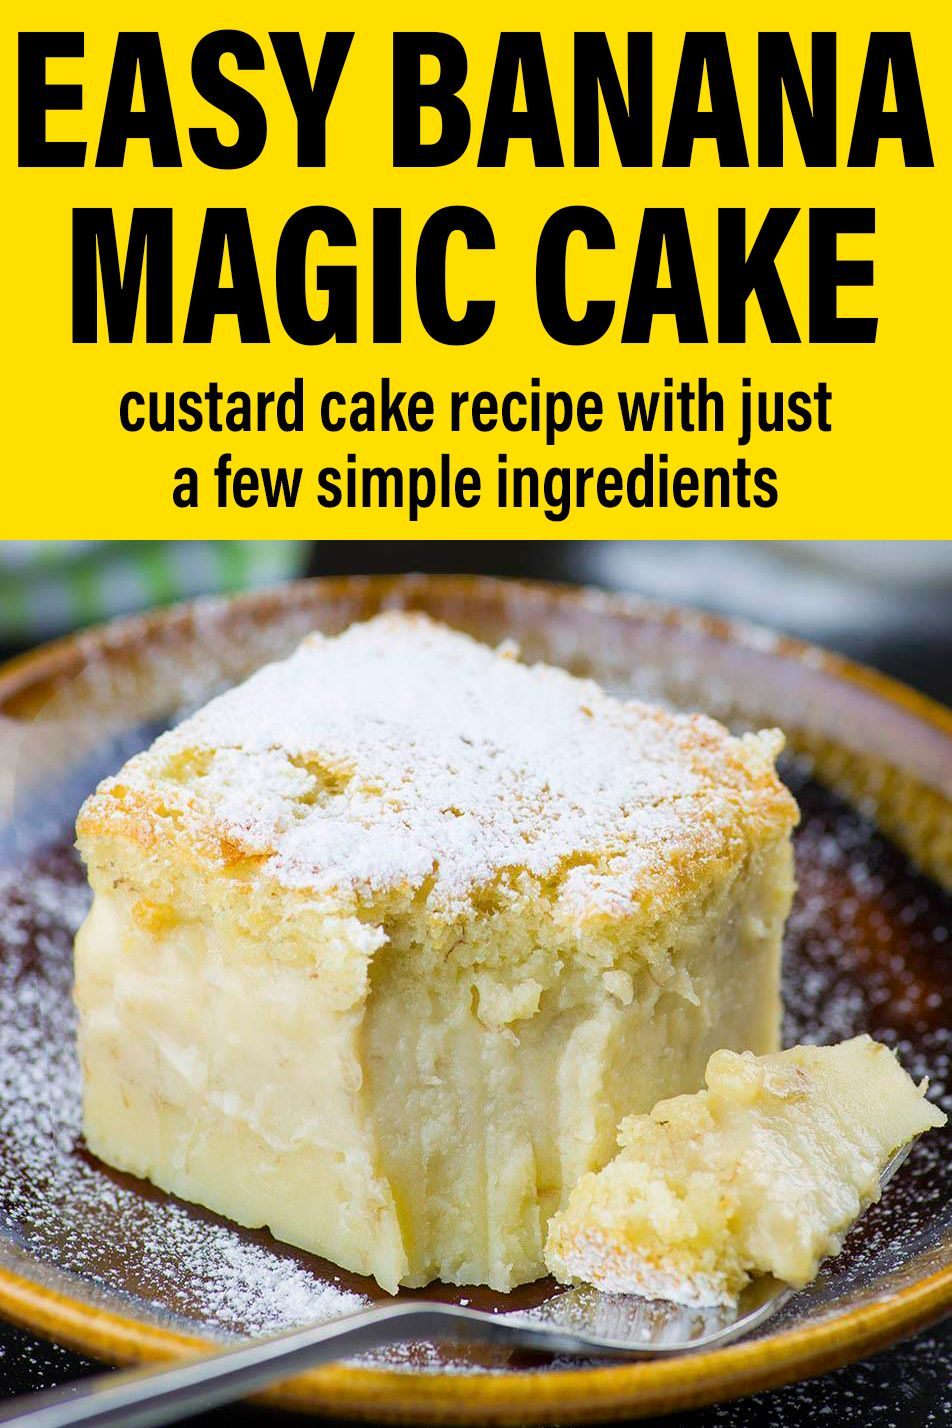 Easy Banana Magic Cake